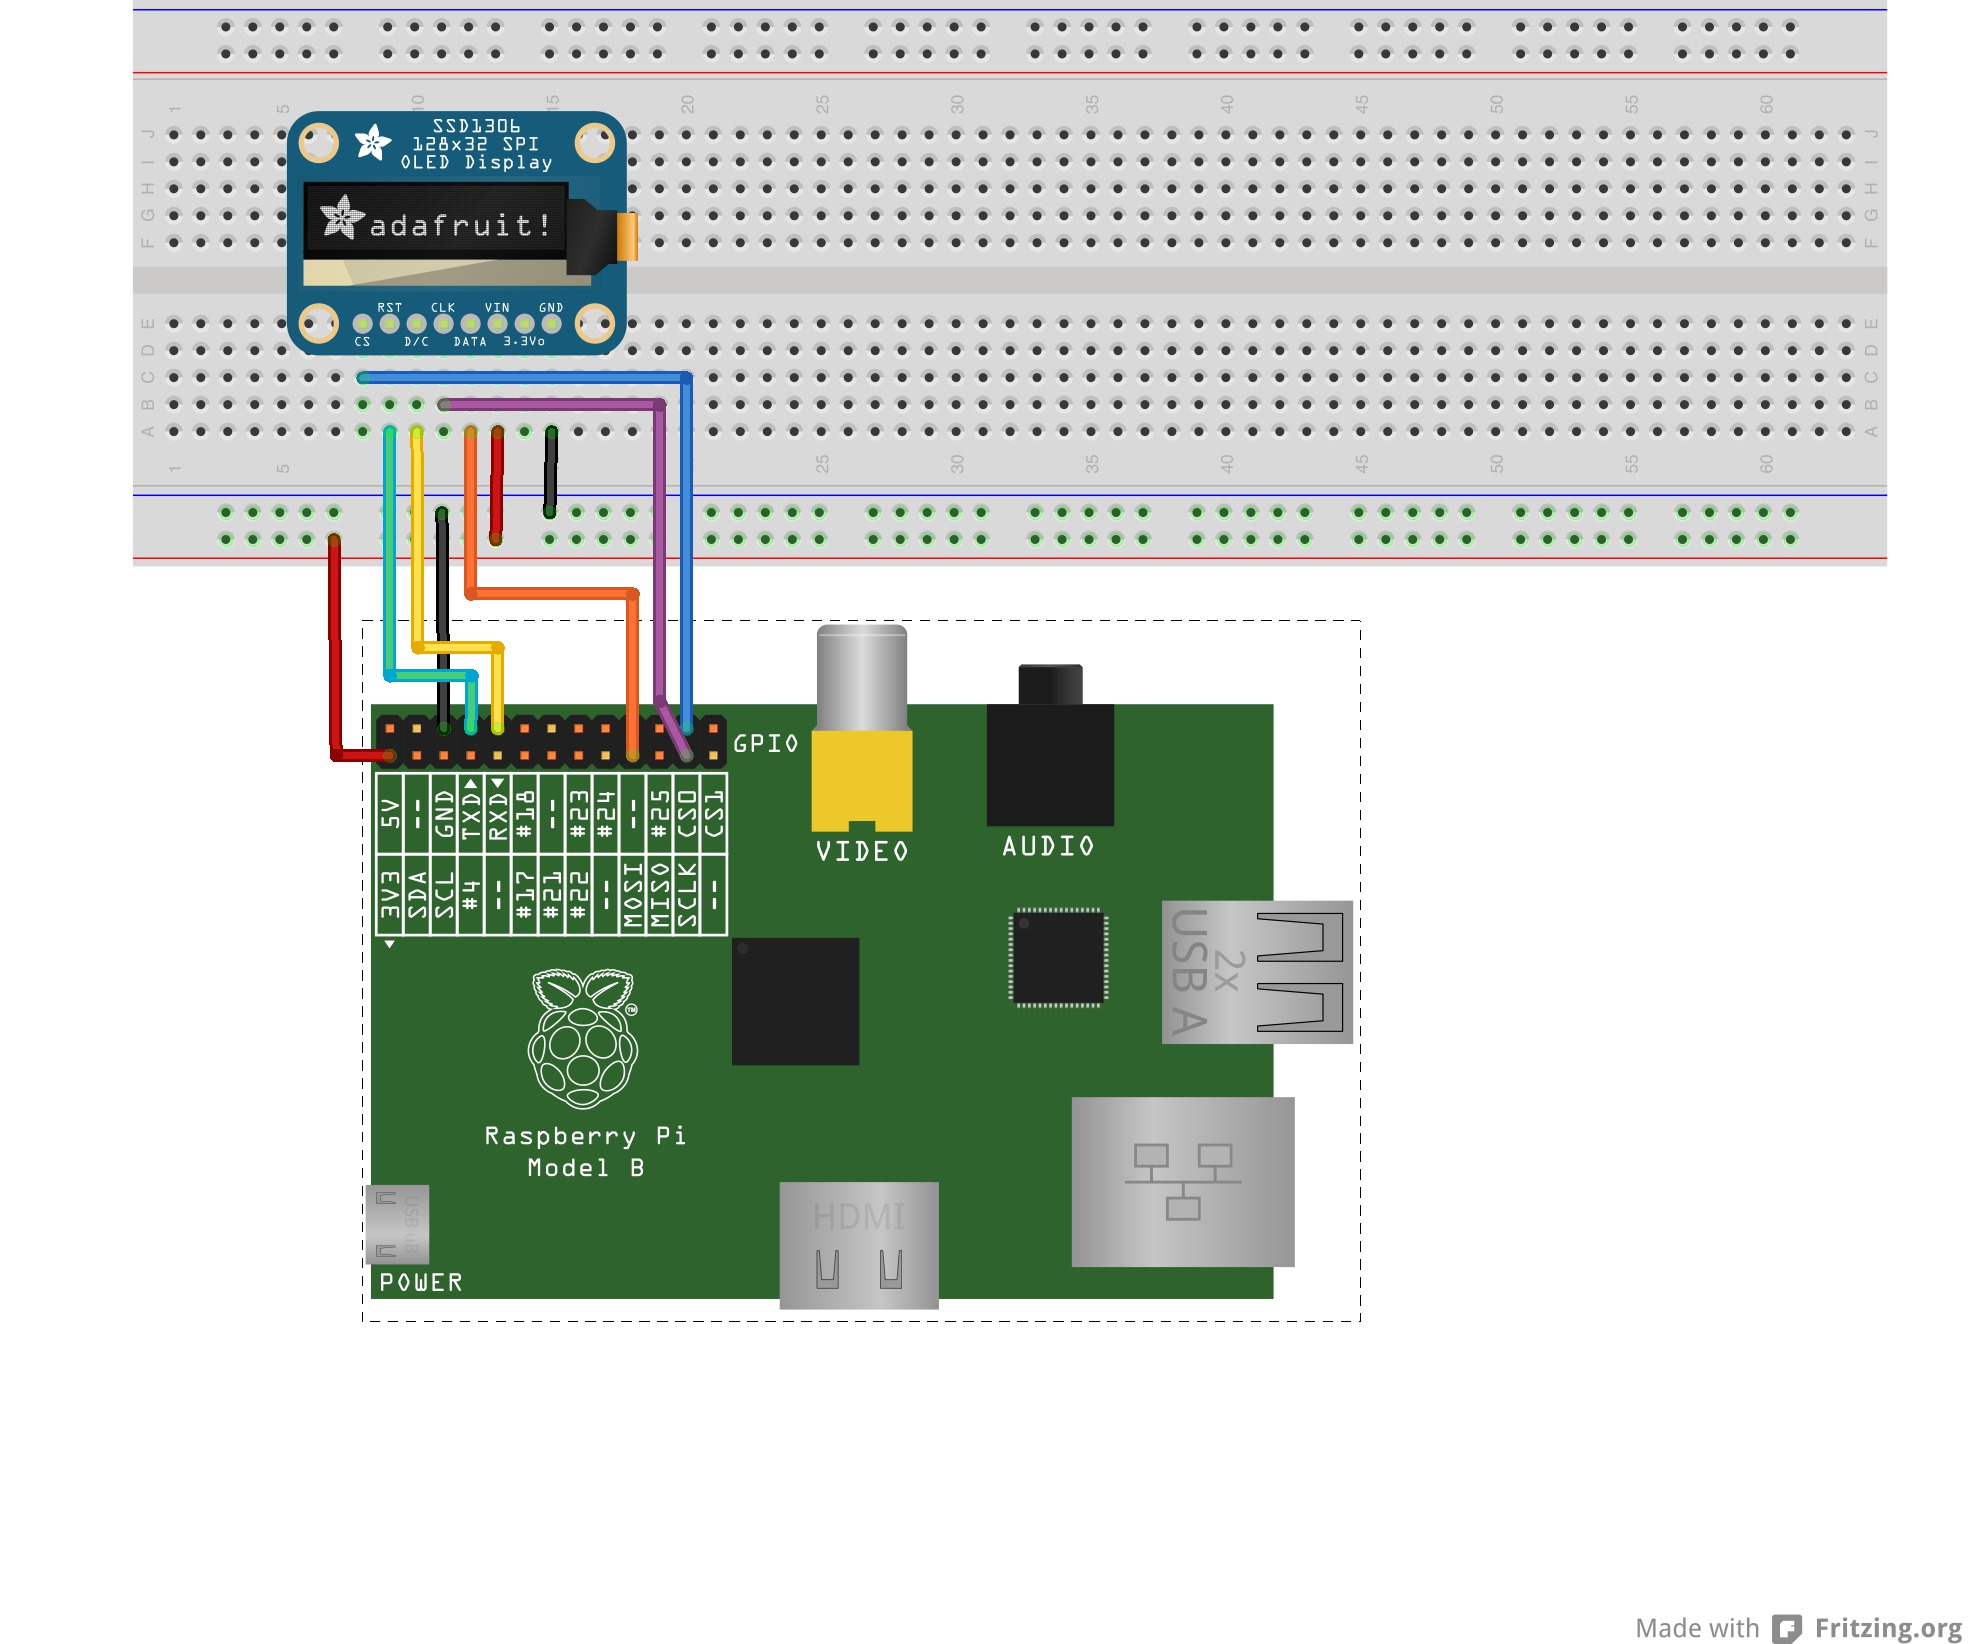 Adafruit Customer Service Forums View Topic Ssd1306 13 128x64 Wiringpi Spi Interrupt The Pins According To Guys Instruction Http Guycarpenteridau Gaugette Blog 2012 11 08 Controlling An Oled With A Raspberry Pi